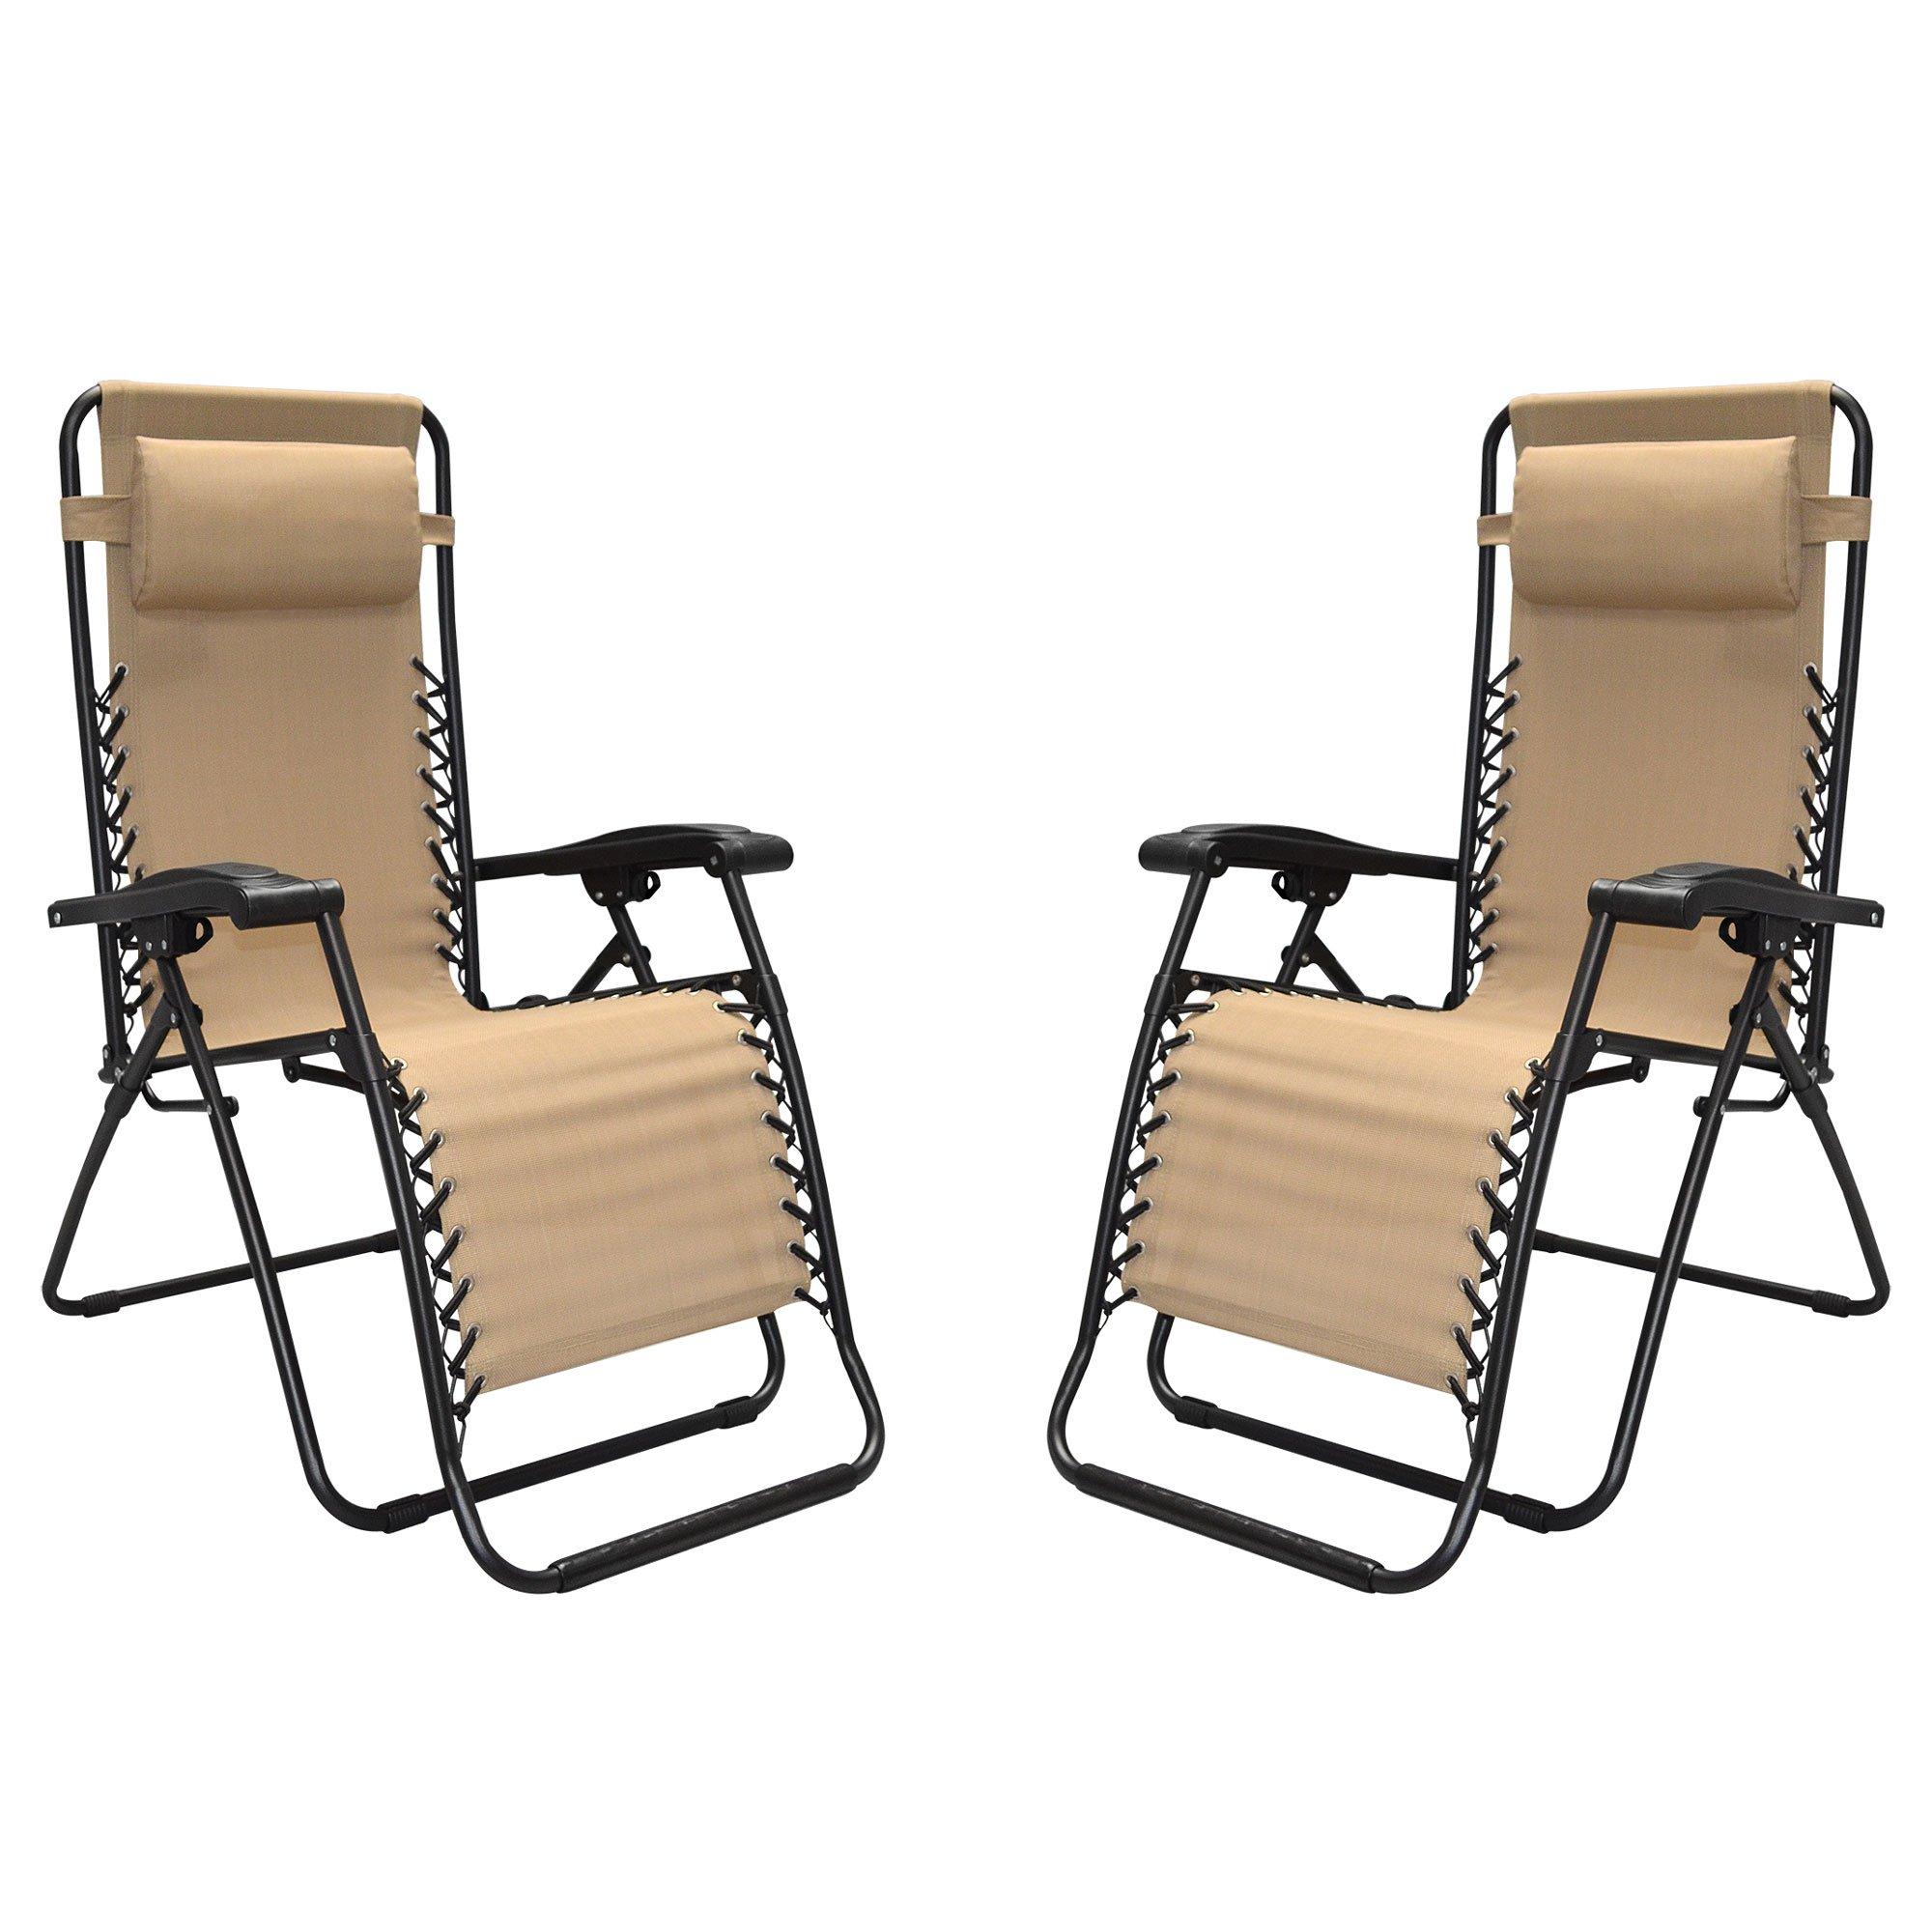 Caravan Sports Infinity Zero Gravity Chair, 2pk, Beige